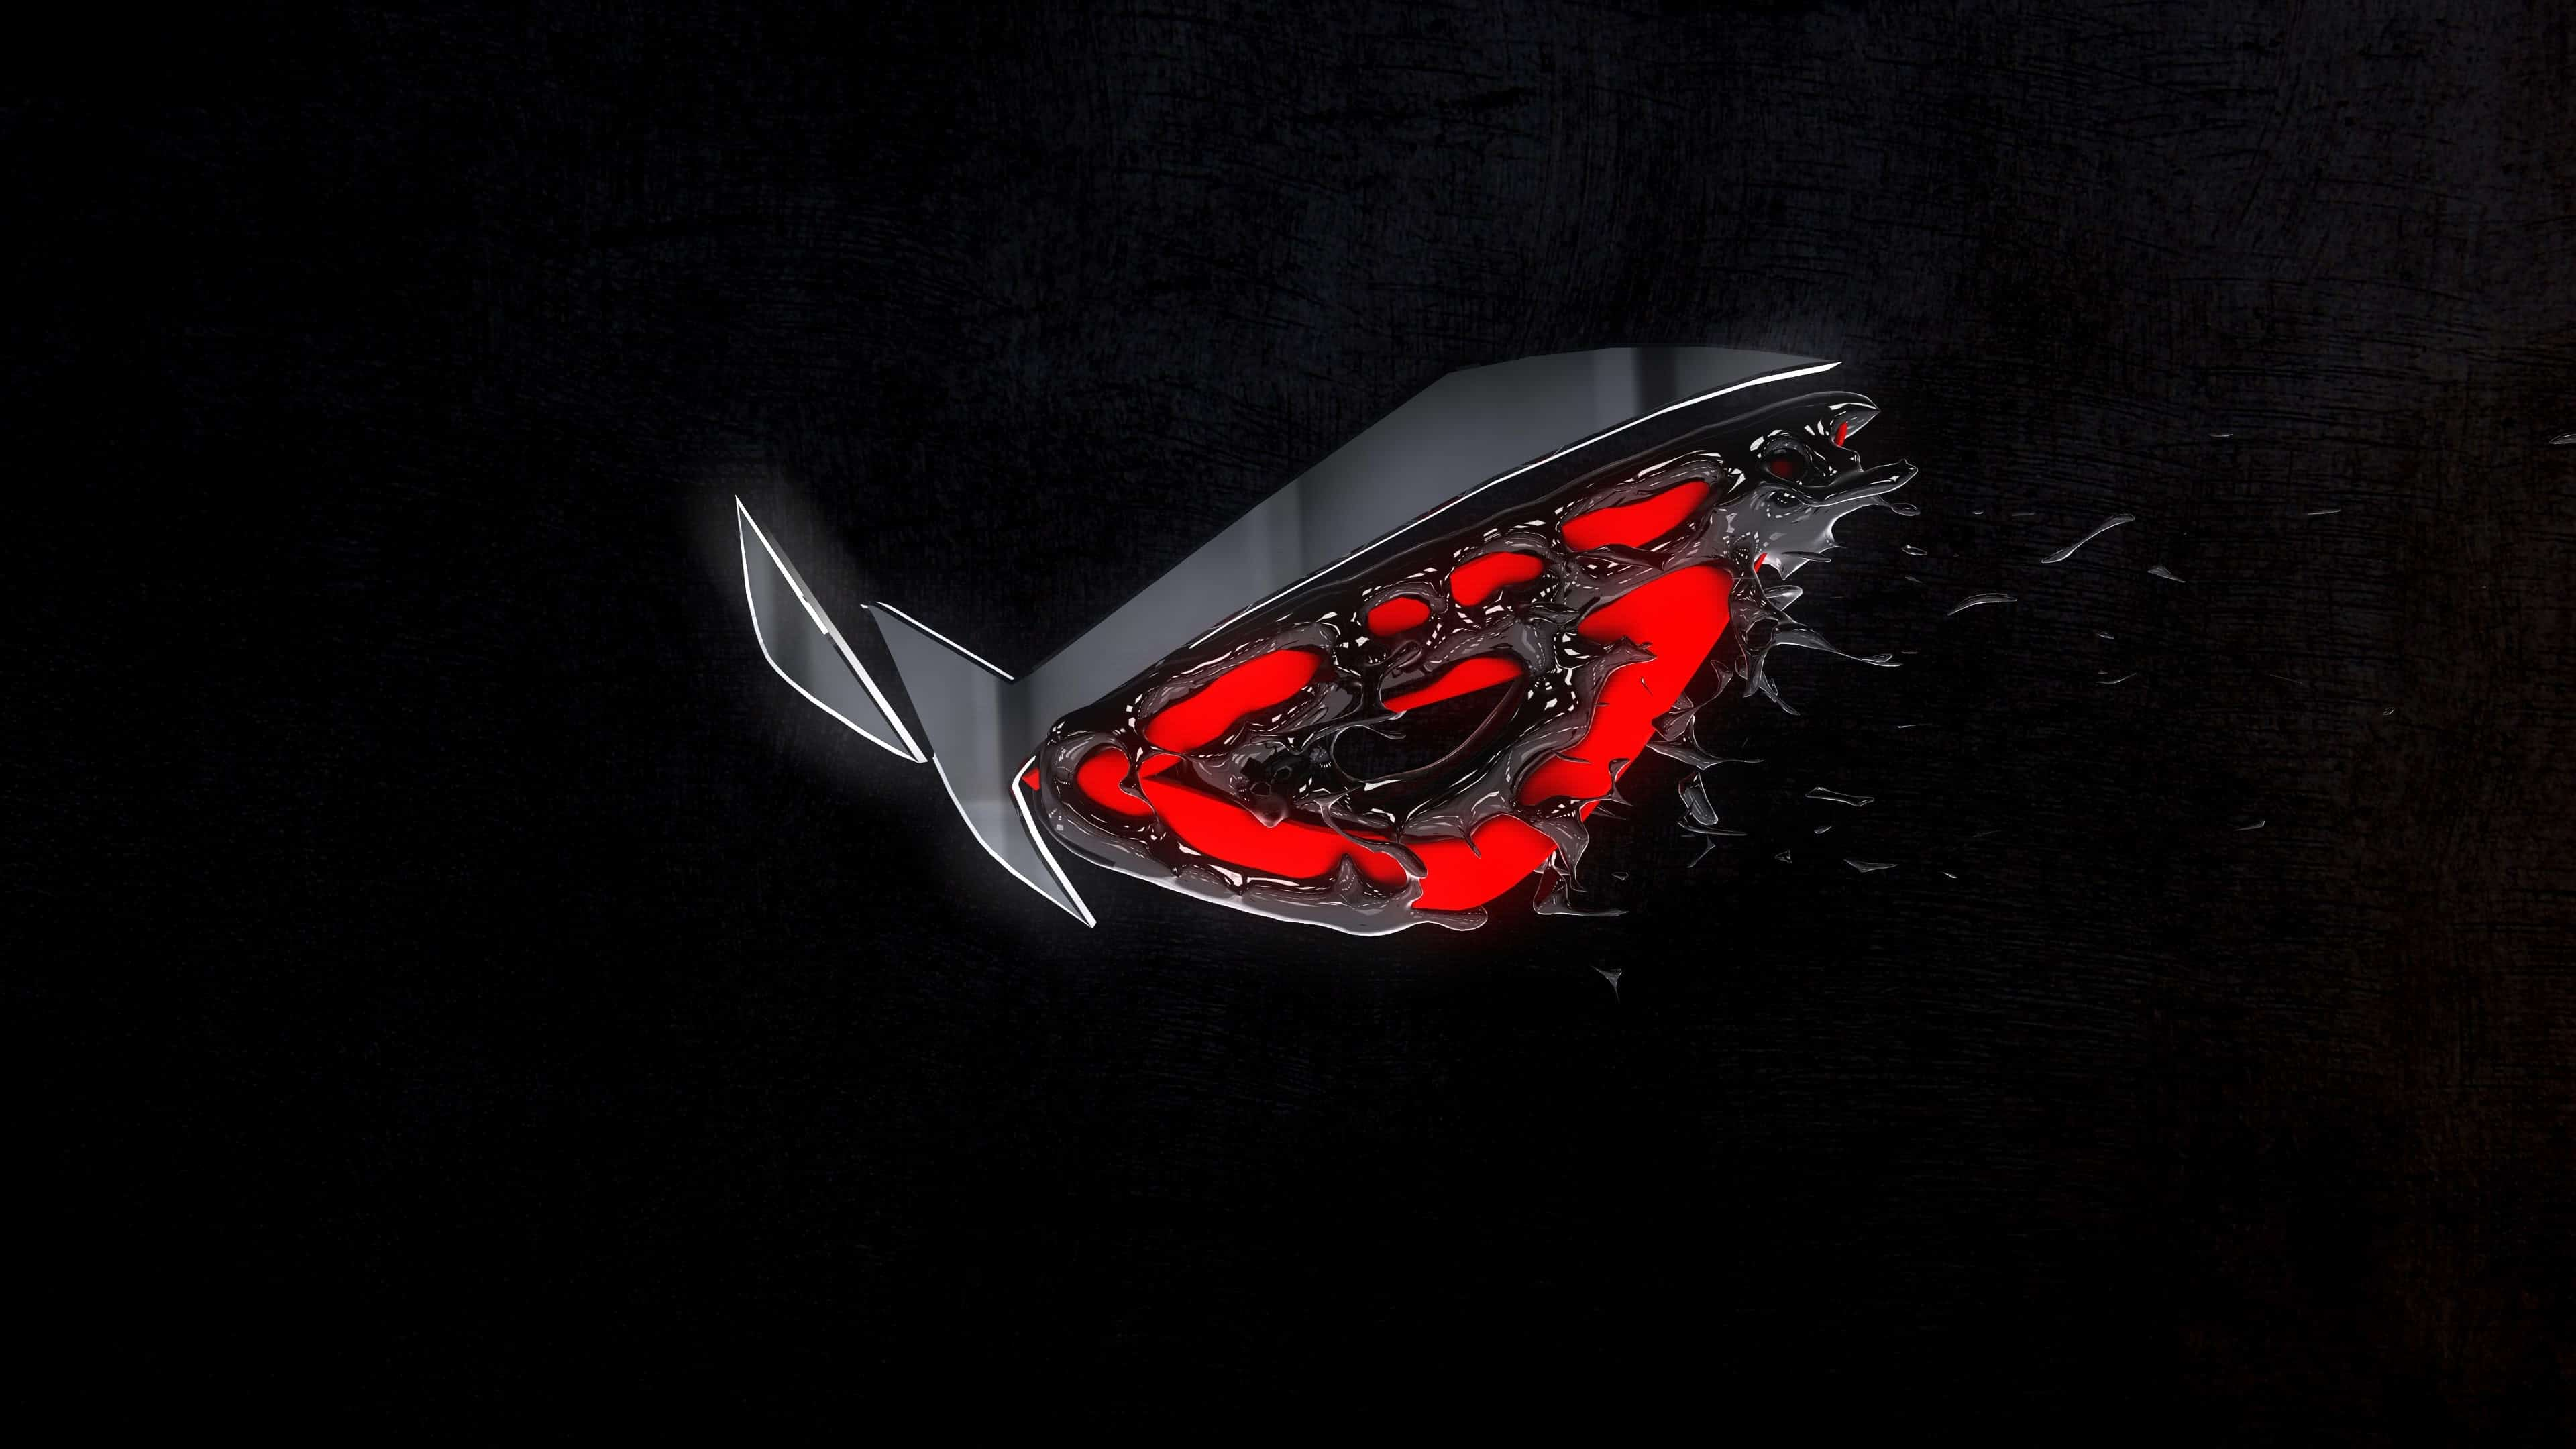 asus rog republic of gamers uhd 4k wallpaper